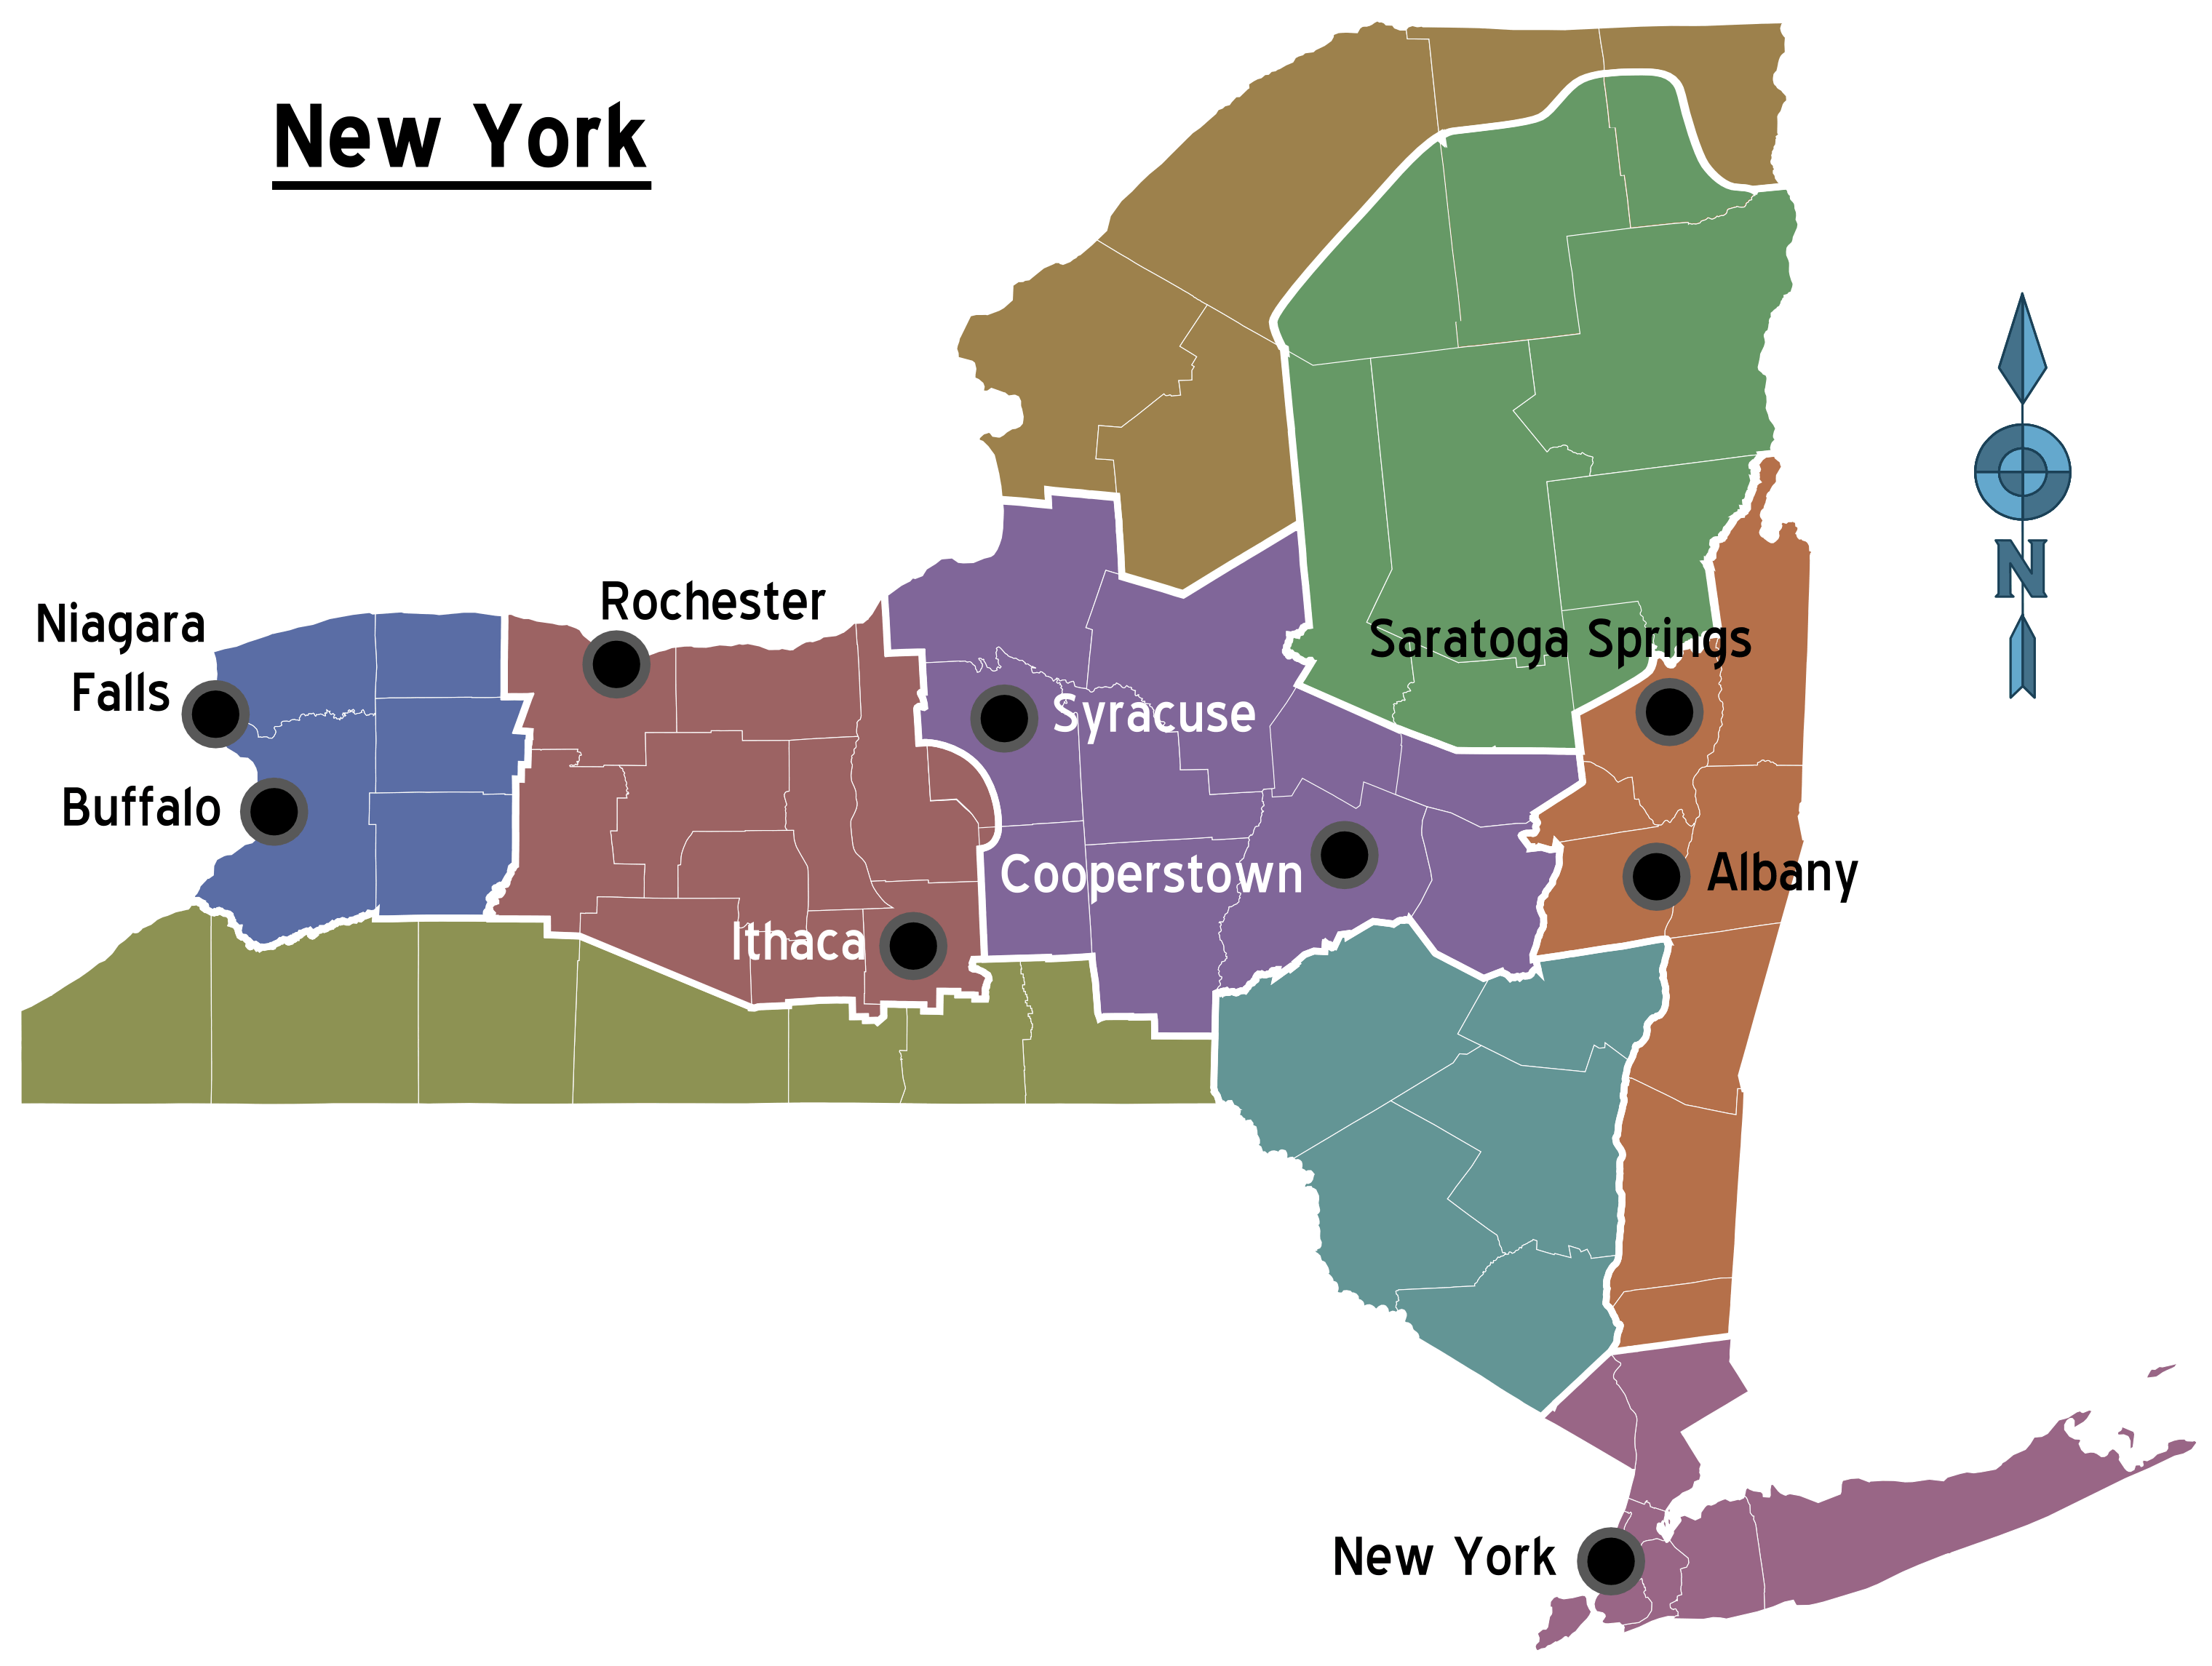 New York Regions Map  Mapsofnet - New york map mountains